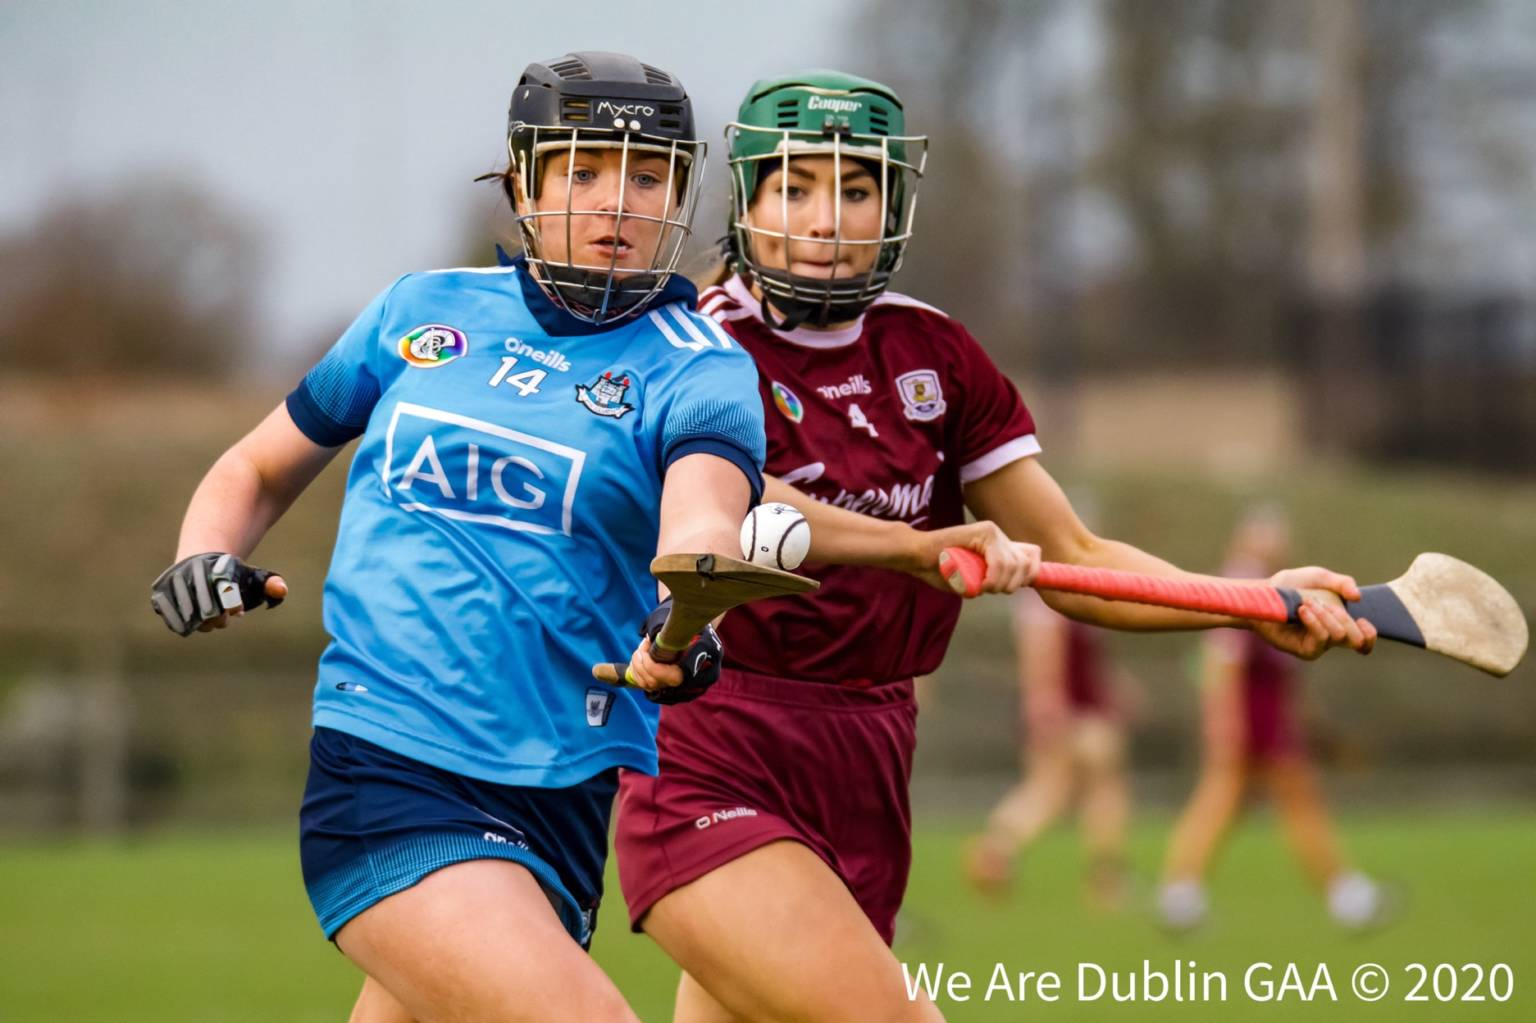 A Dublin Camogie Player breaks away from a Galway player during a league game, the Camogie Association has announced its revised National Camogie Fixtures schedule for the rest of 2020